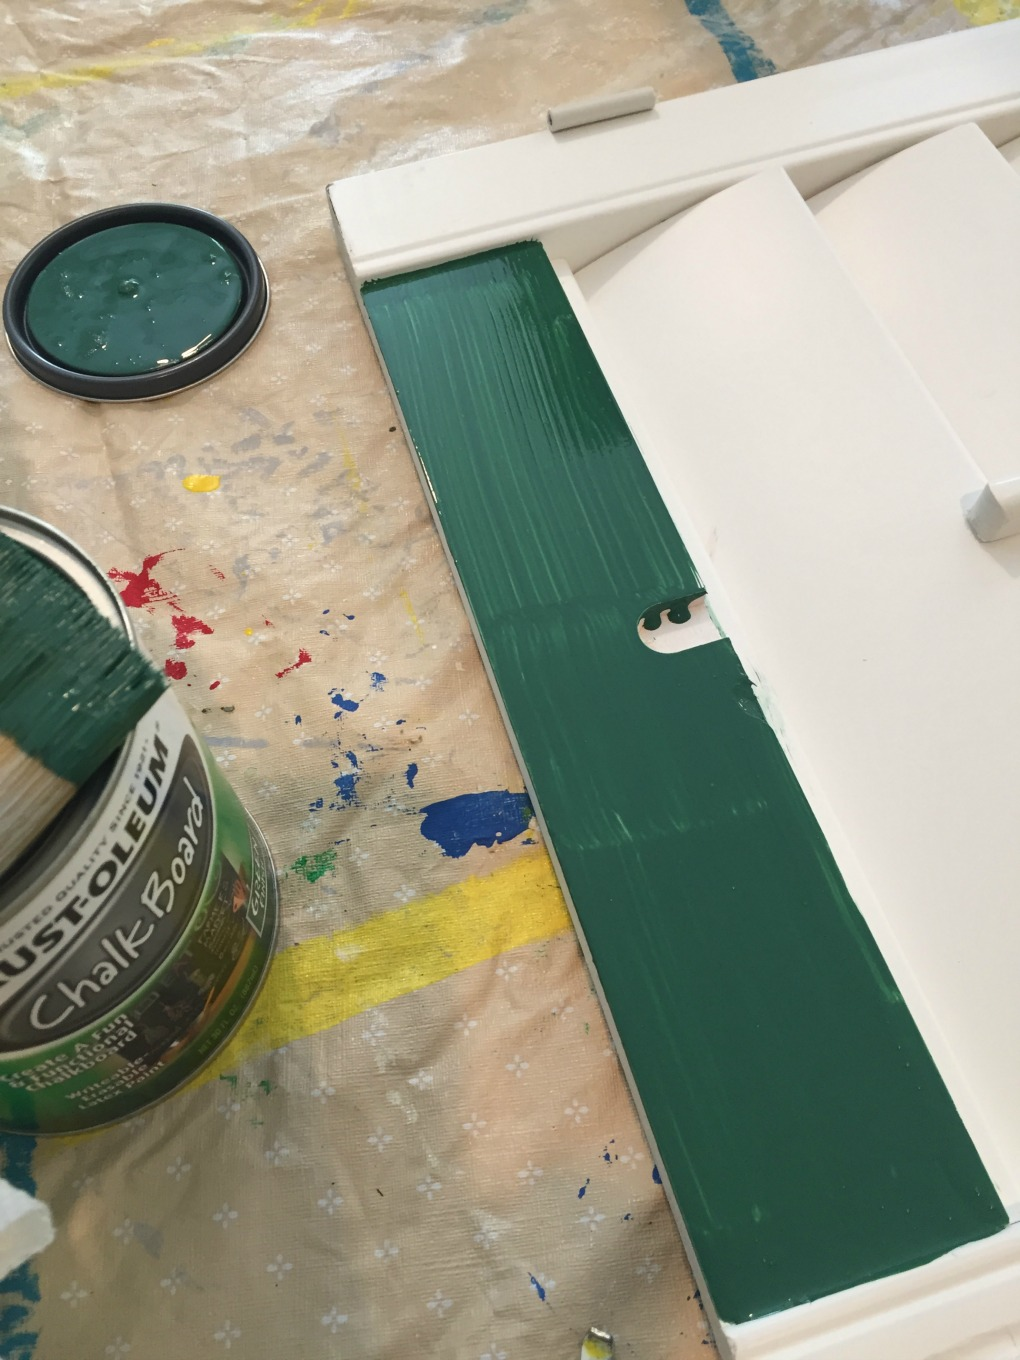 Paint shutters for message board with chalkboard paint - thediybungalow.com